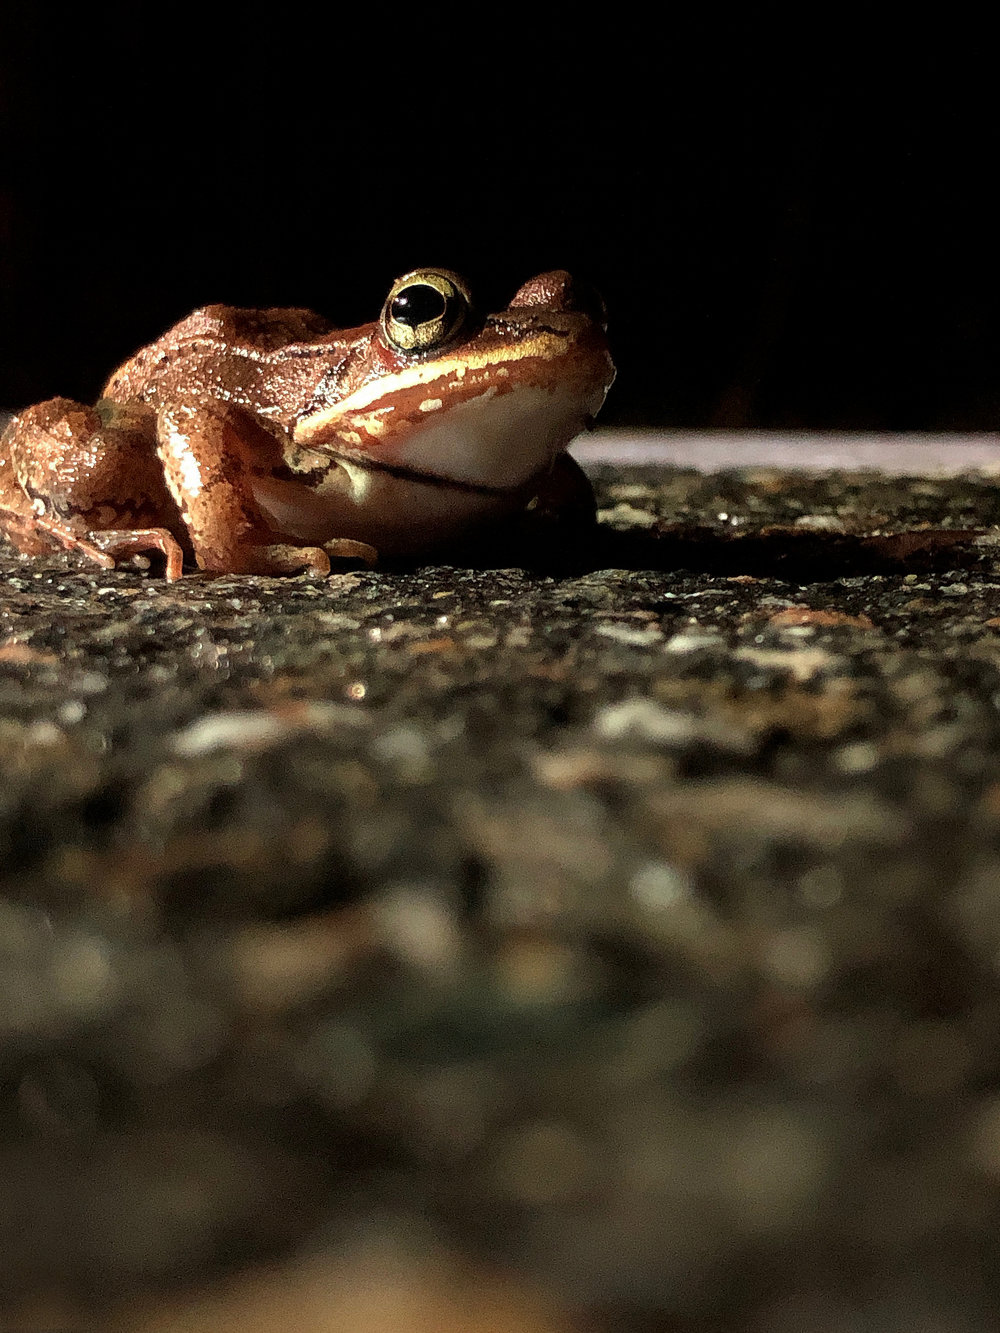 Wood frogs have evolved to freeze solid over the winter. They thaw out in early spring and migrate to local vernal pools and wetlands to breed and deposit eggs. (Anna Miller/Animalia Podcast)